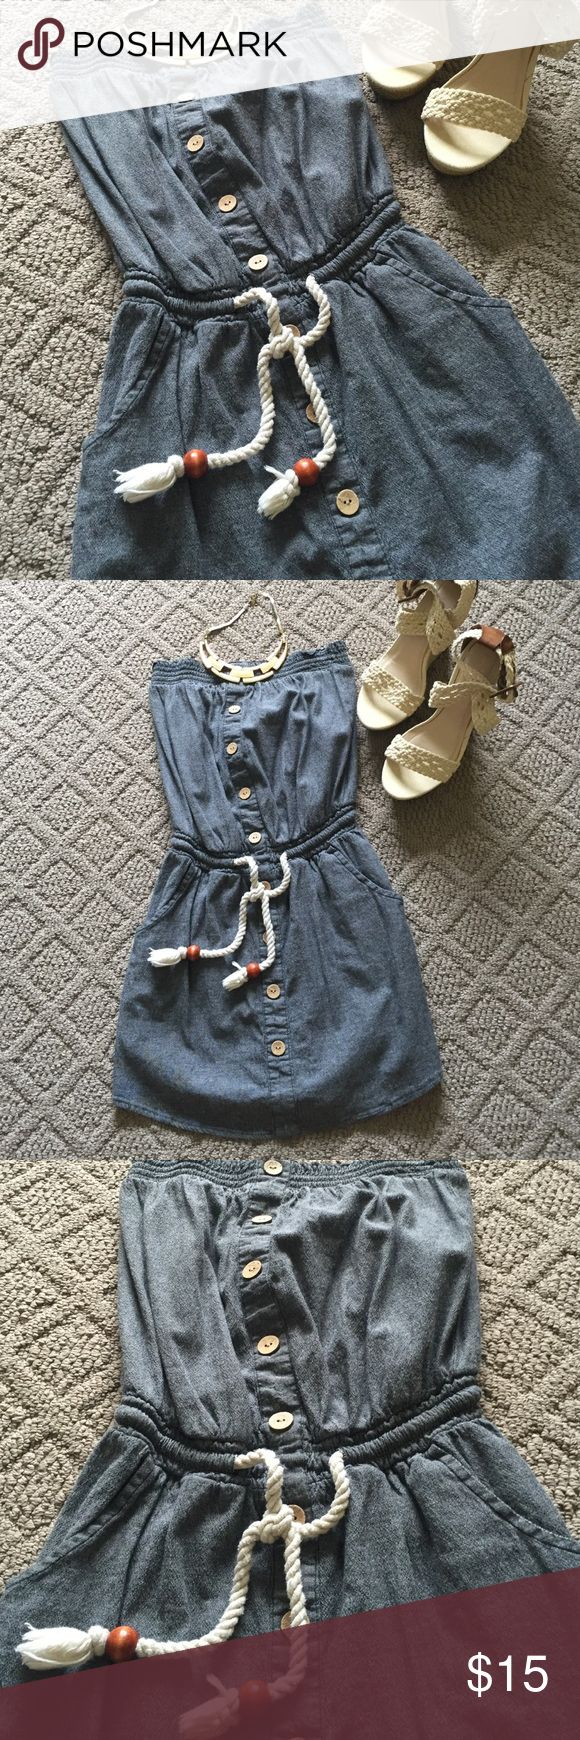 """Super Cute Strapless dress!! Strapless dress can be worn casually with sandals or dressed up with cute wedges and a statement necklace.  So sad this doesn't fit me anymore.  It was one of my favorites!  Top to bottom approximately 25"""".  Has a denim look to it. Derek Heart Dresses Strapless"""